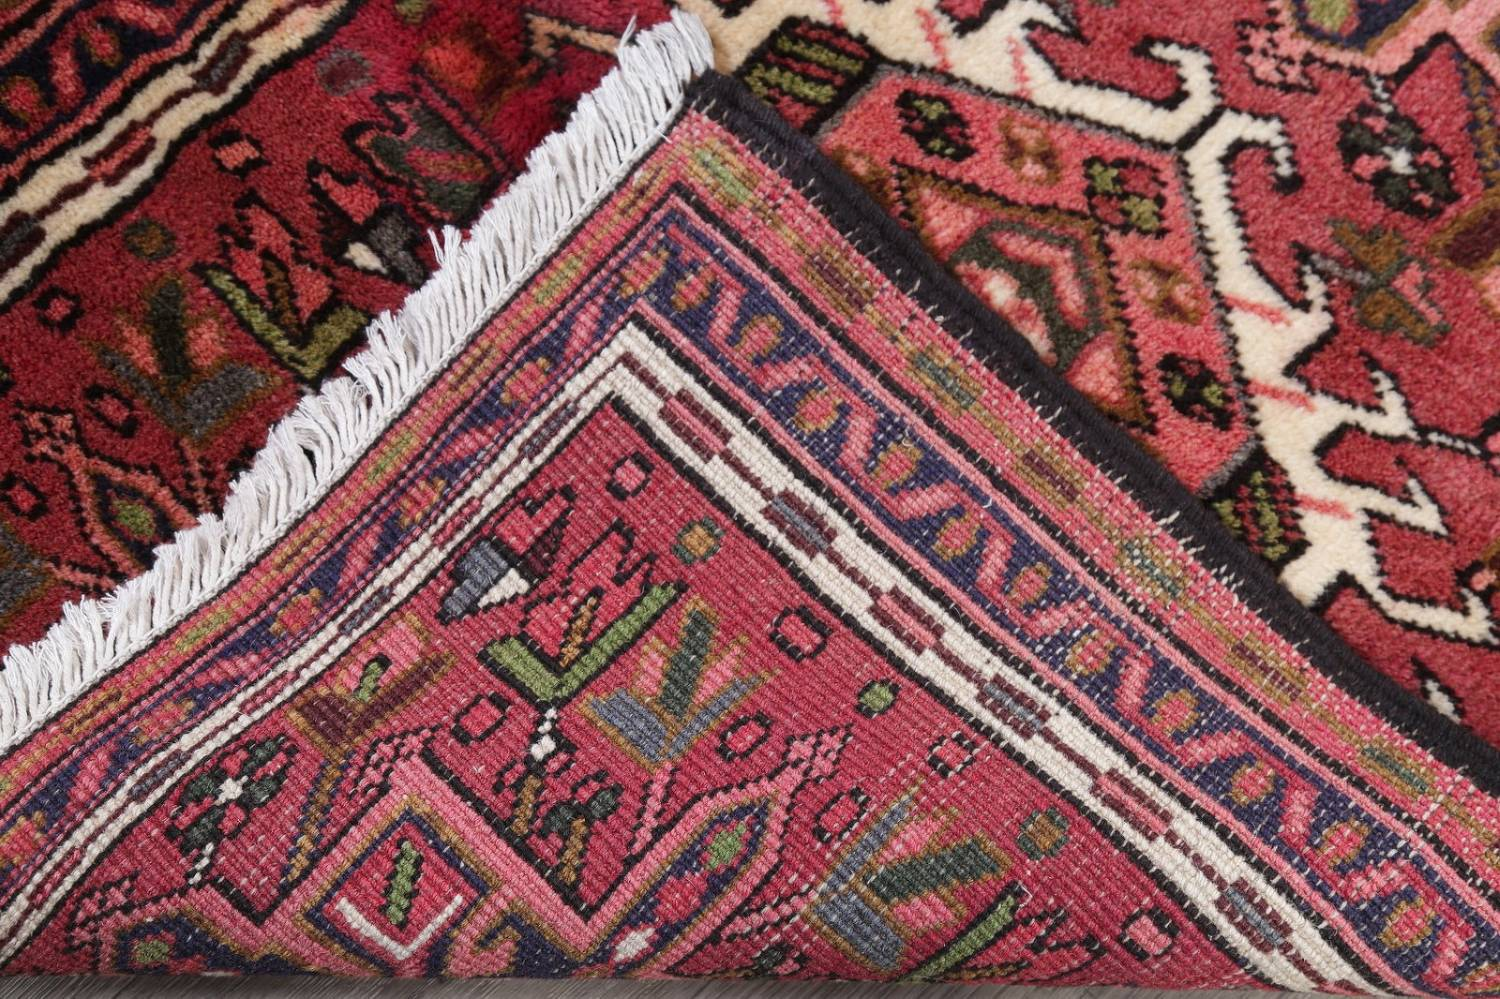 Geometric Red Gharajeh Persian Hand-Knotted Runner Rug Wool 3x10 image 19